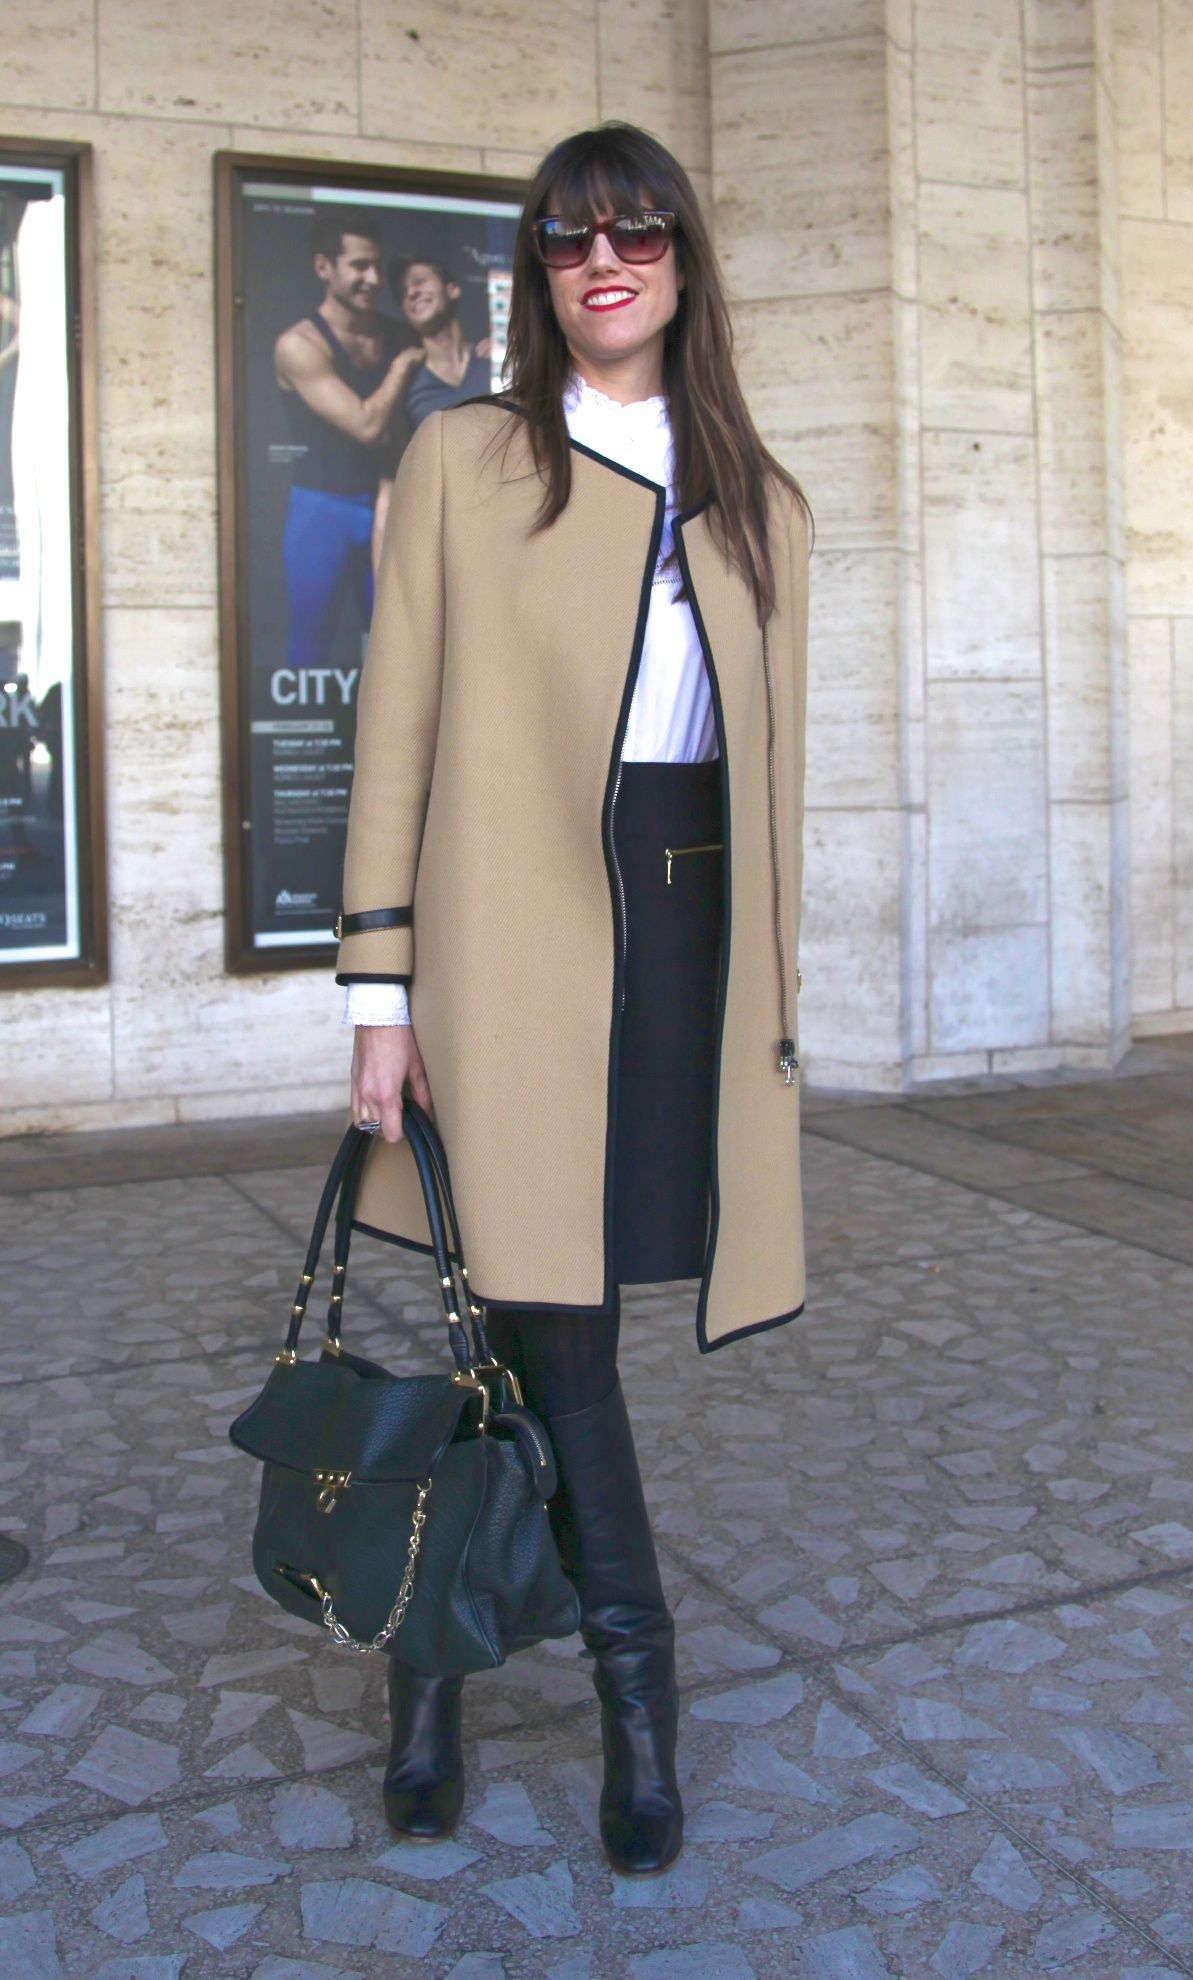 Her Camel Coloured Jacket Paired With A Crisp White Shirt And Black Skirt Is Clic Modern Nod To Men S Wear